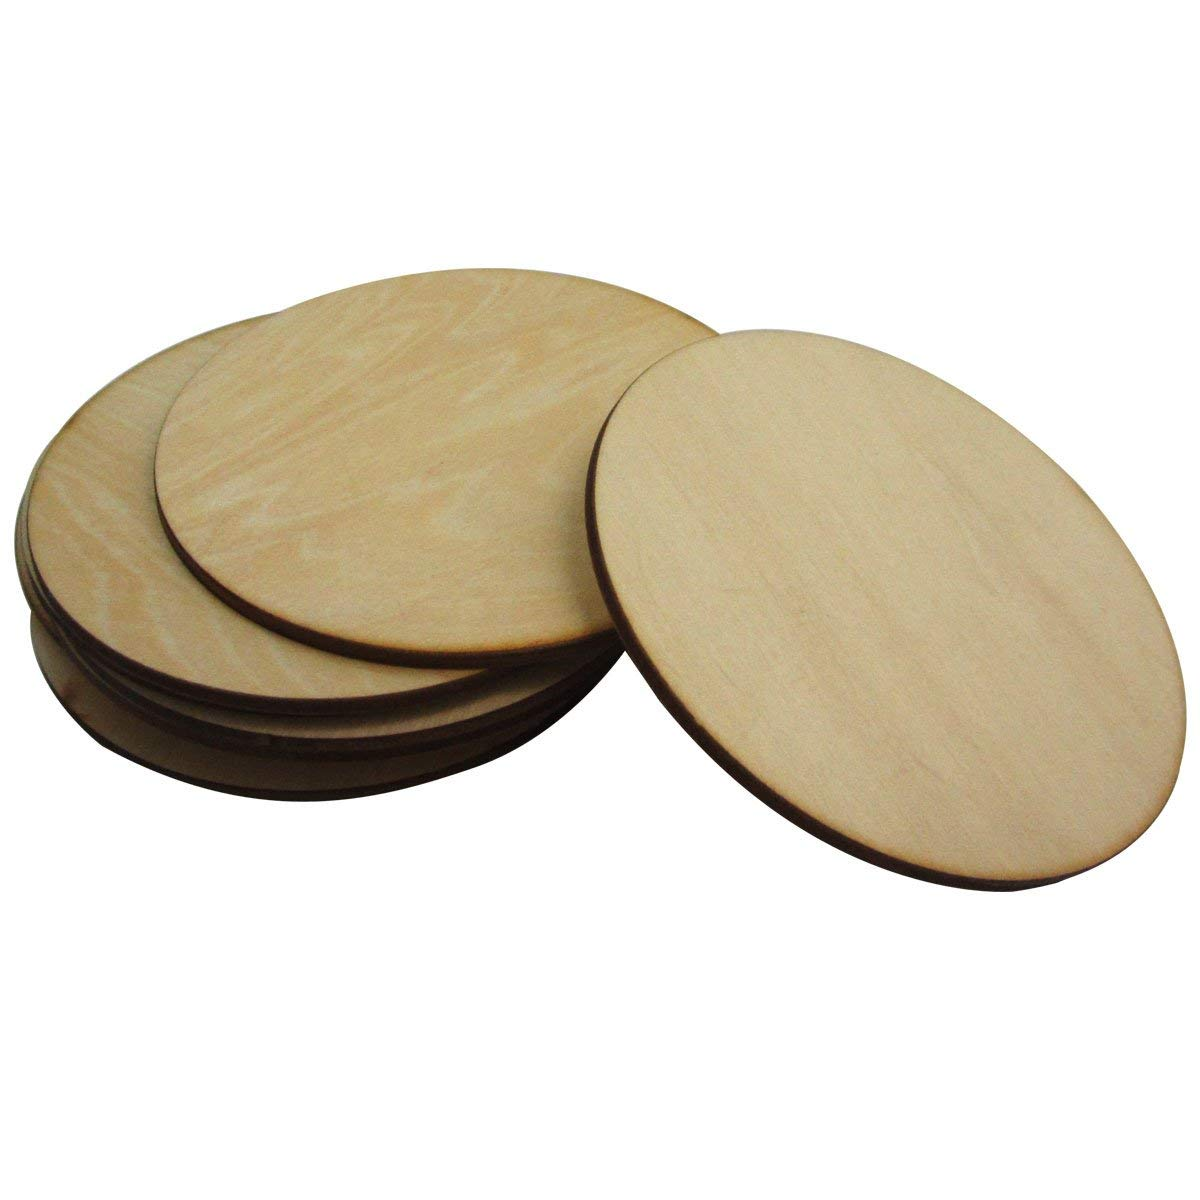 WINGONEER 10pcs 3mm Thick Basswood Round Wooden Disc Blank Wood Cutout for Creating Jewelry Painted Christmas Tree Decorated craft Projects - Diameter 10cm